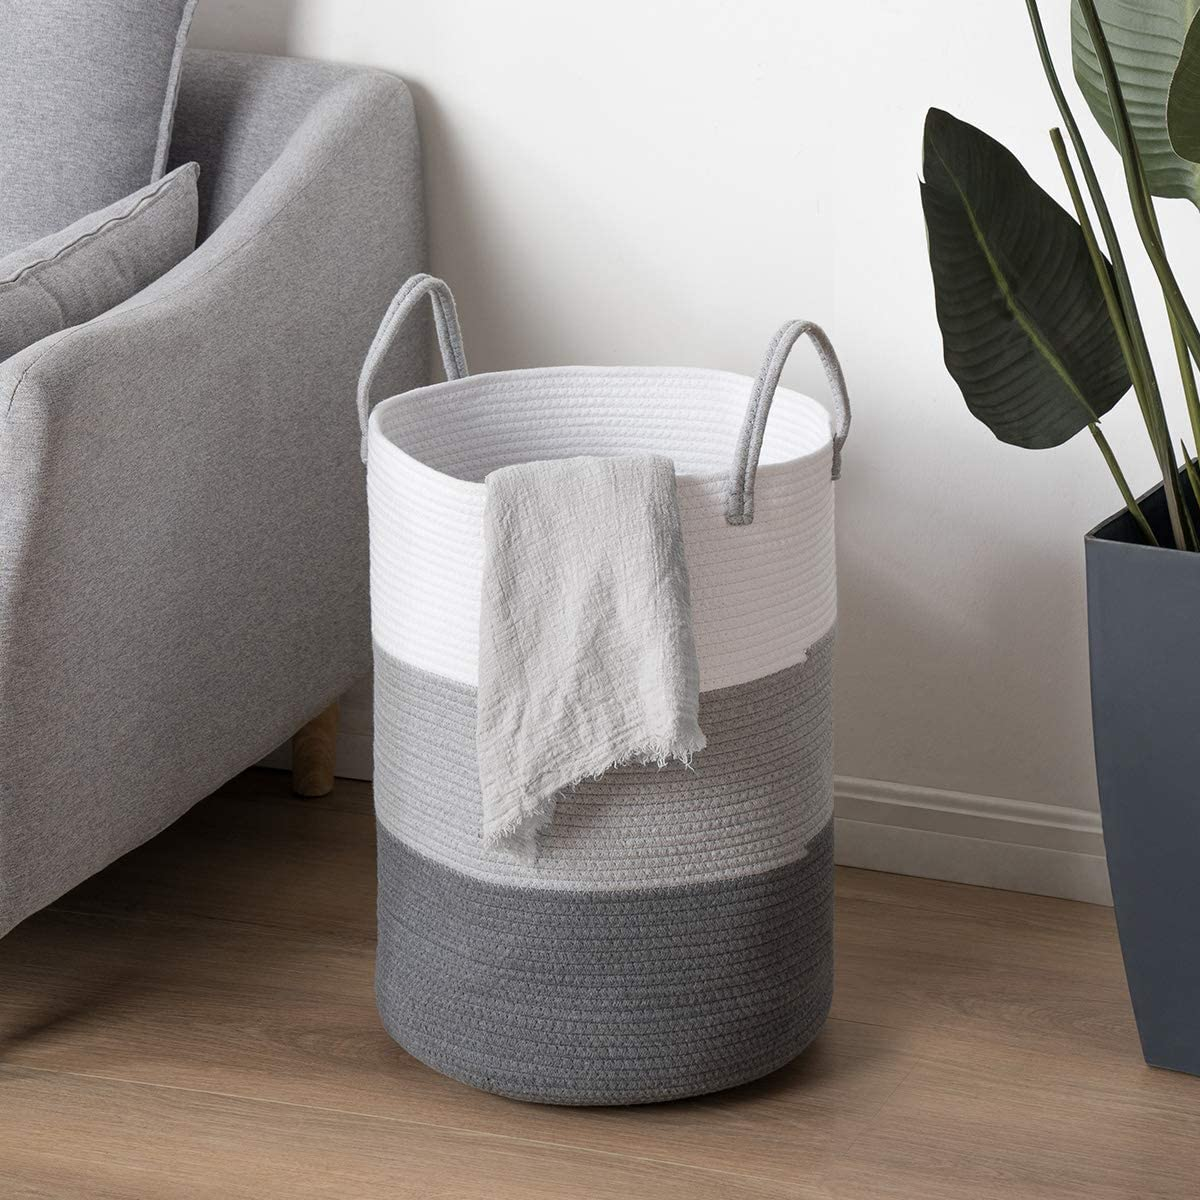 Decorative Woven Bathroom Storage Cube Bins for Clothes Towels Blankets Set of 3 YOUDENOVA Cotton Rope Basket for Organizing Books Toys White